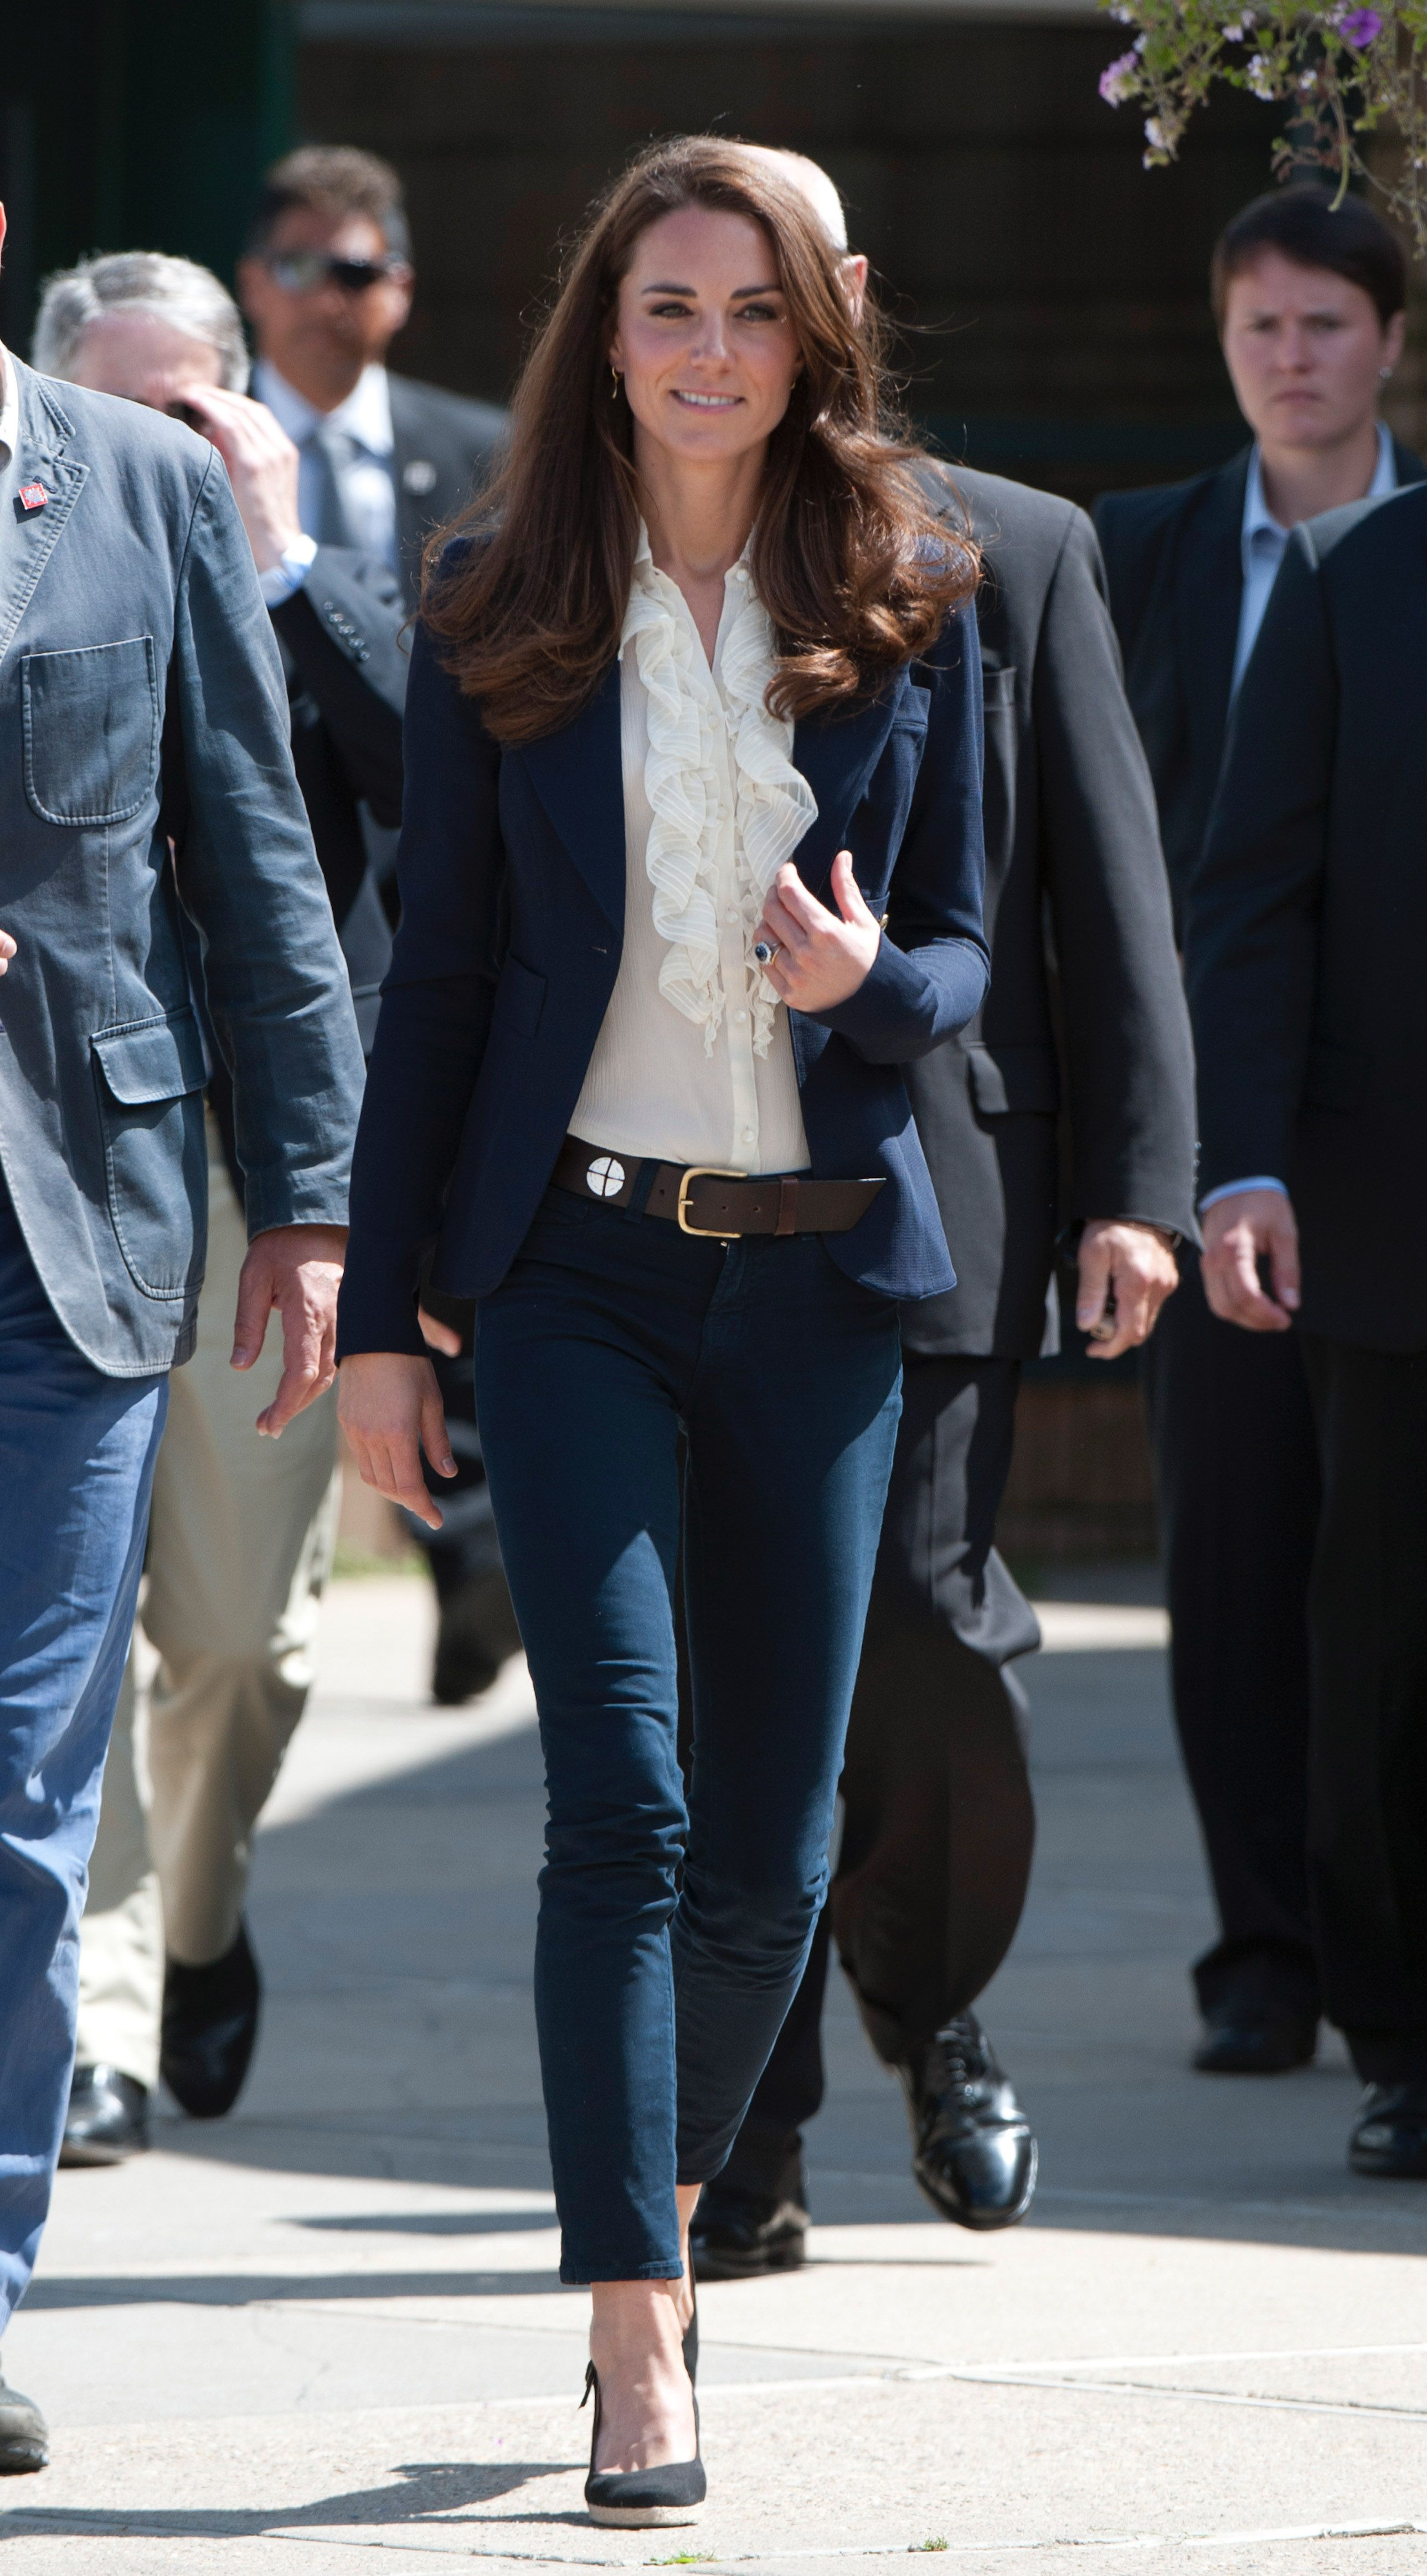 655e3e299 Estilo de Kate Middleton